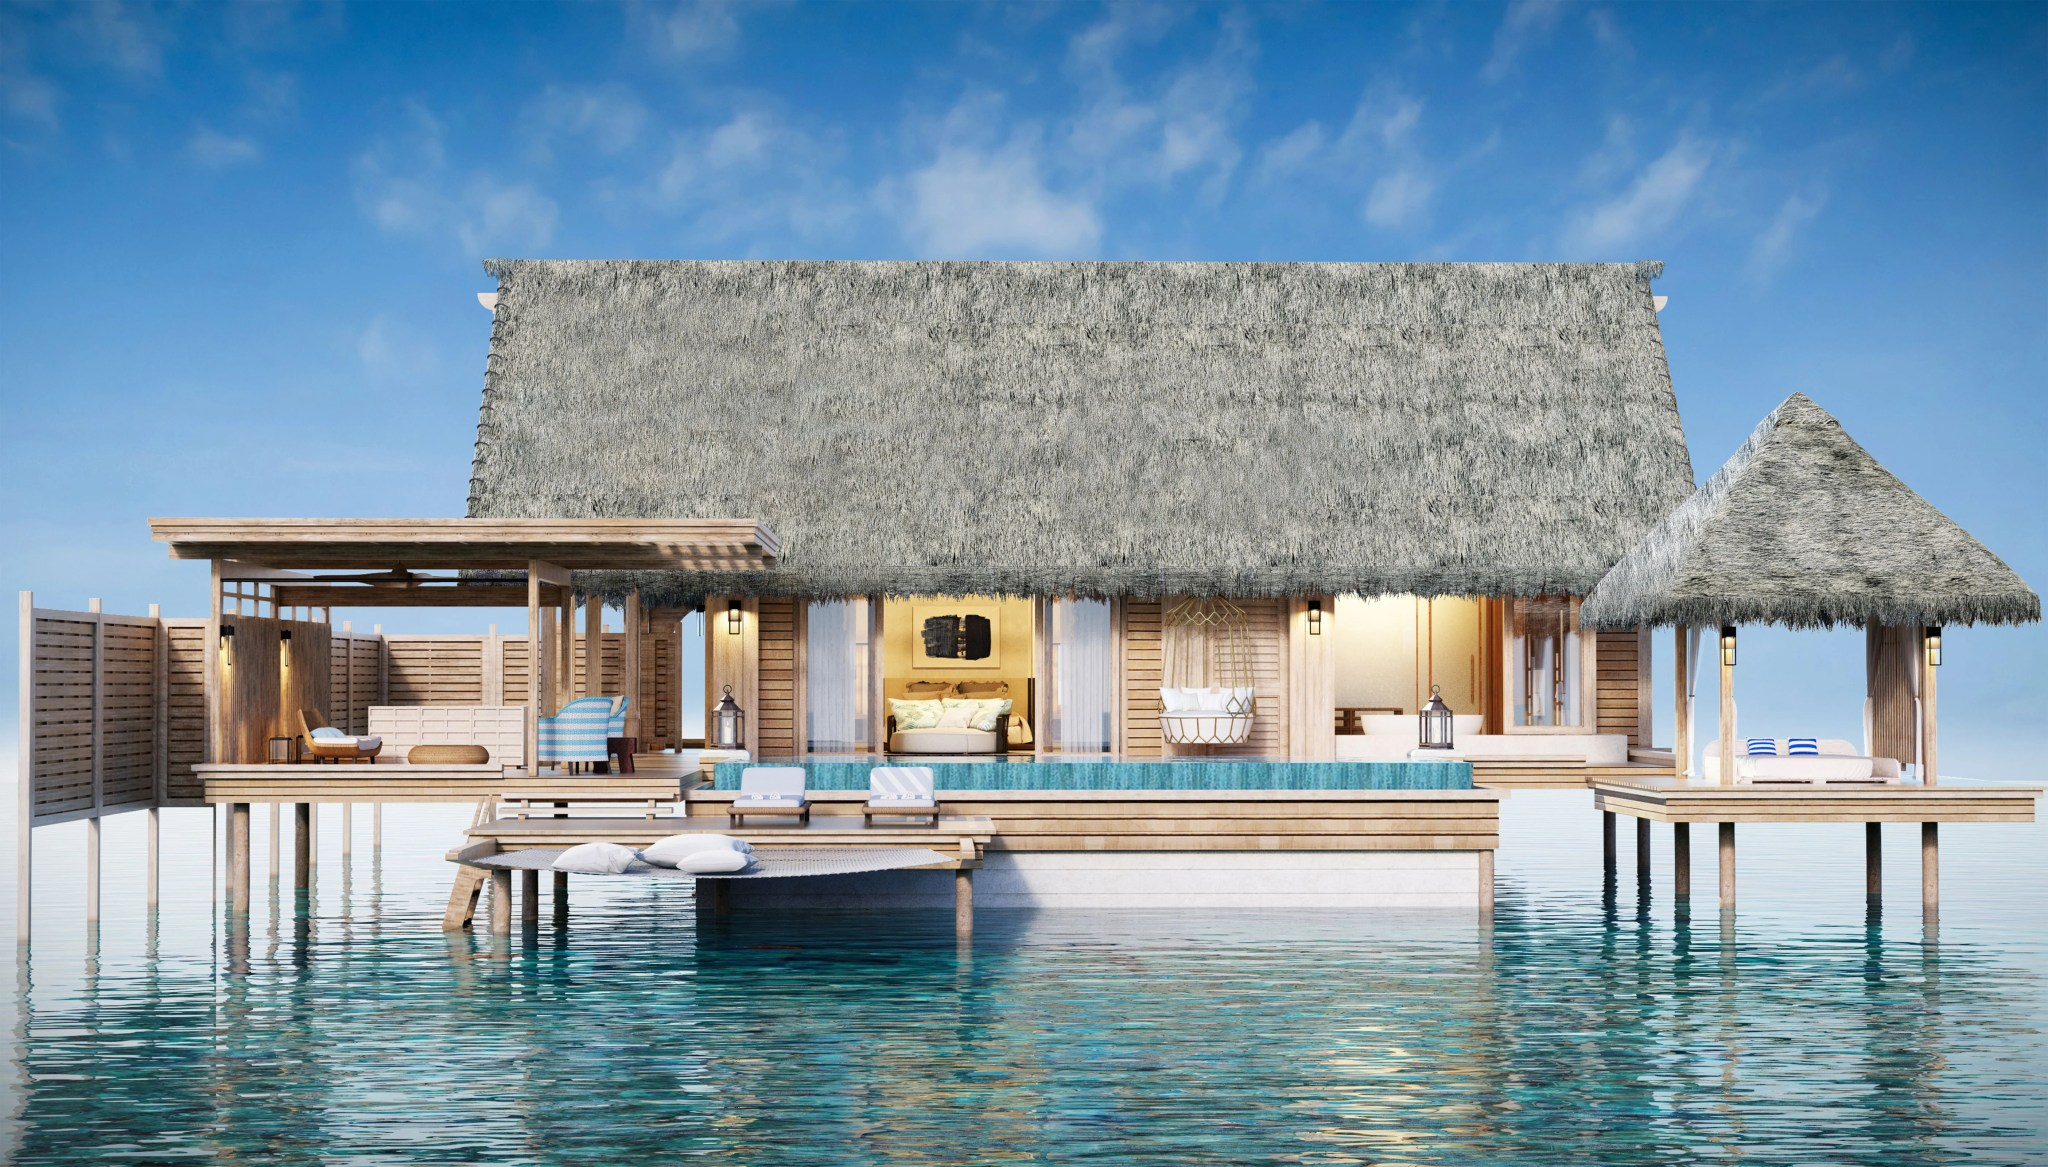 Overwater Villa. Image by Hilton